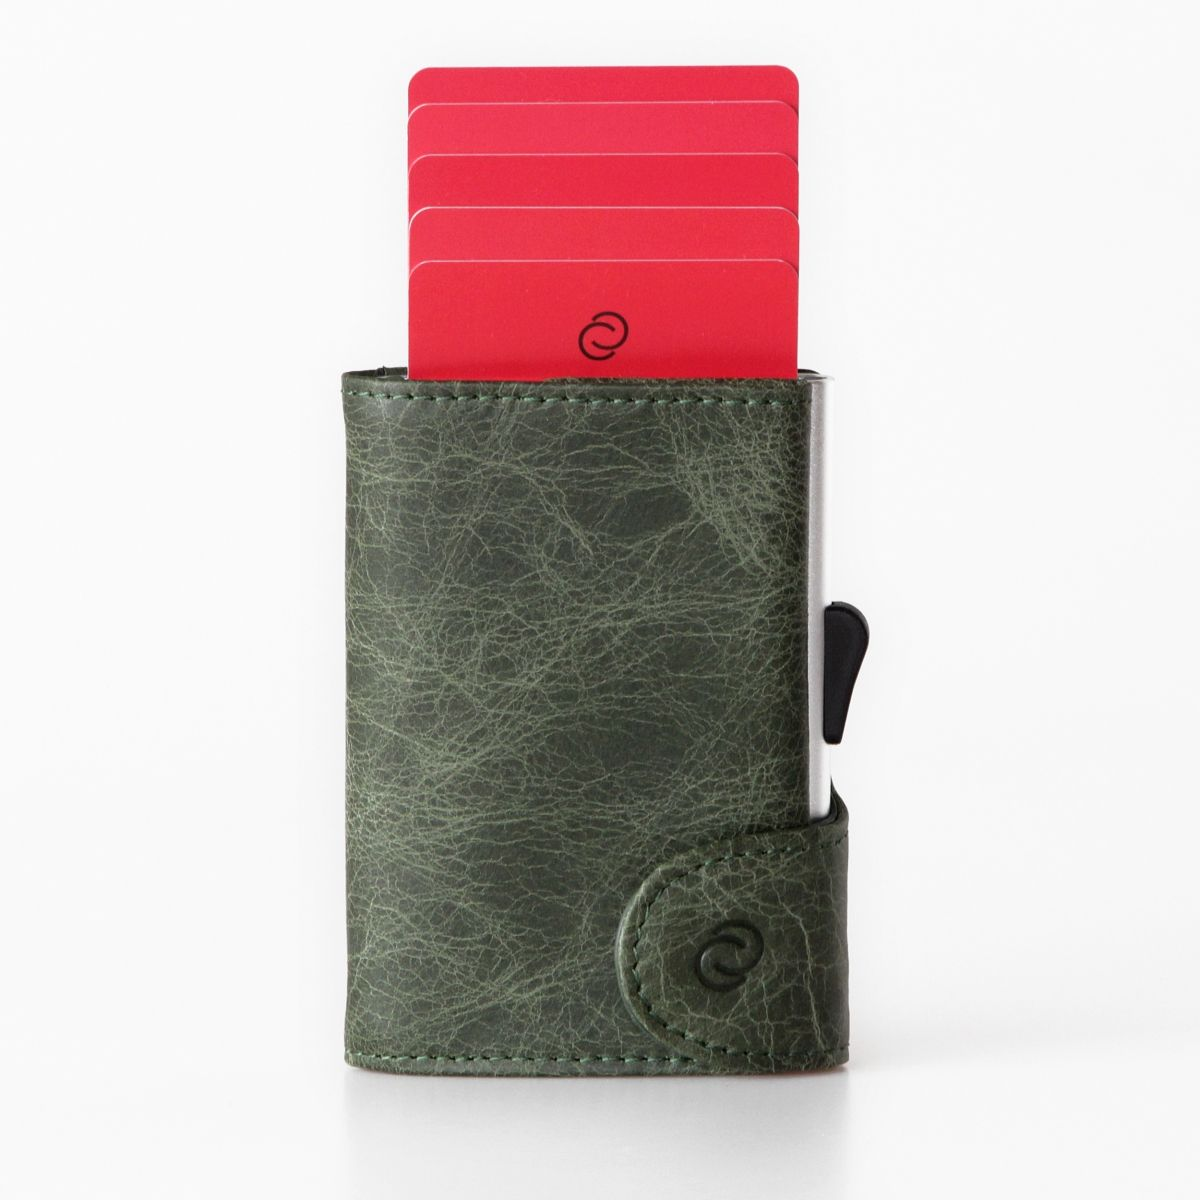 Aluminum Card Holder with Genuine Leather - Green